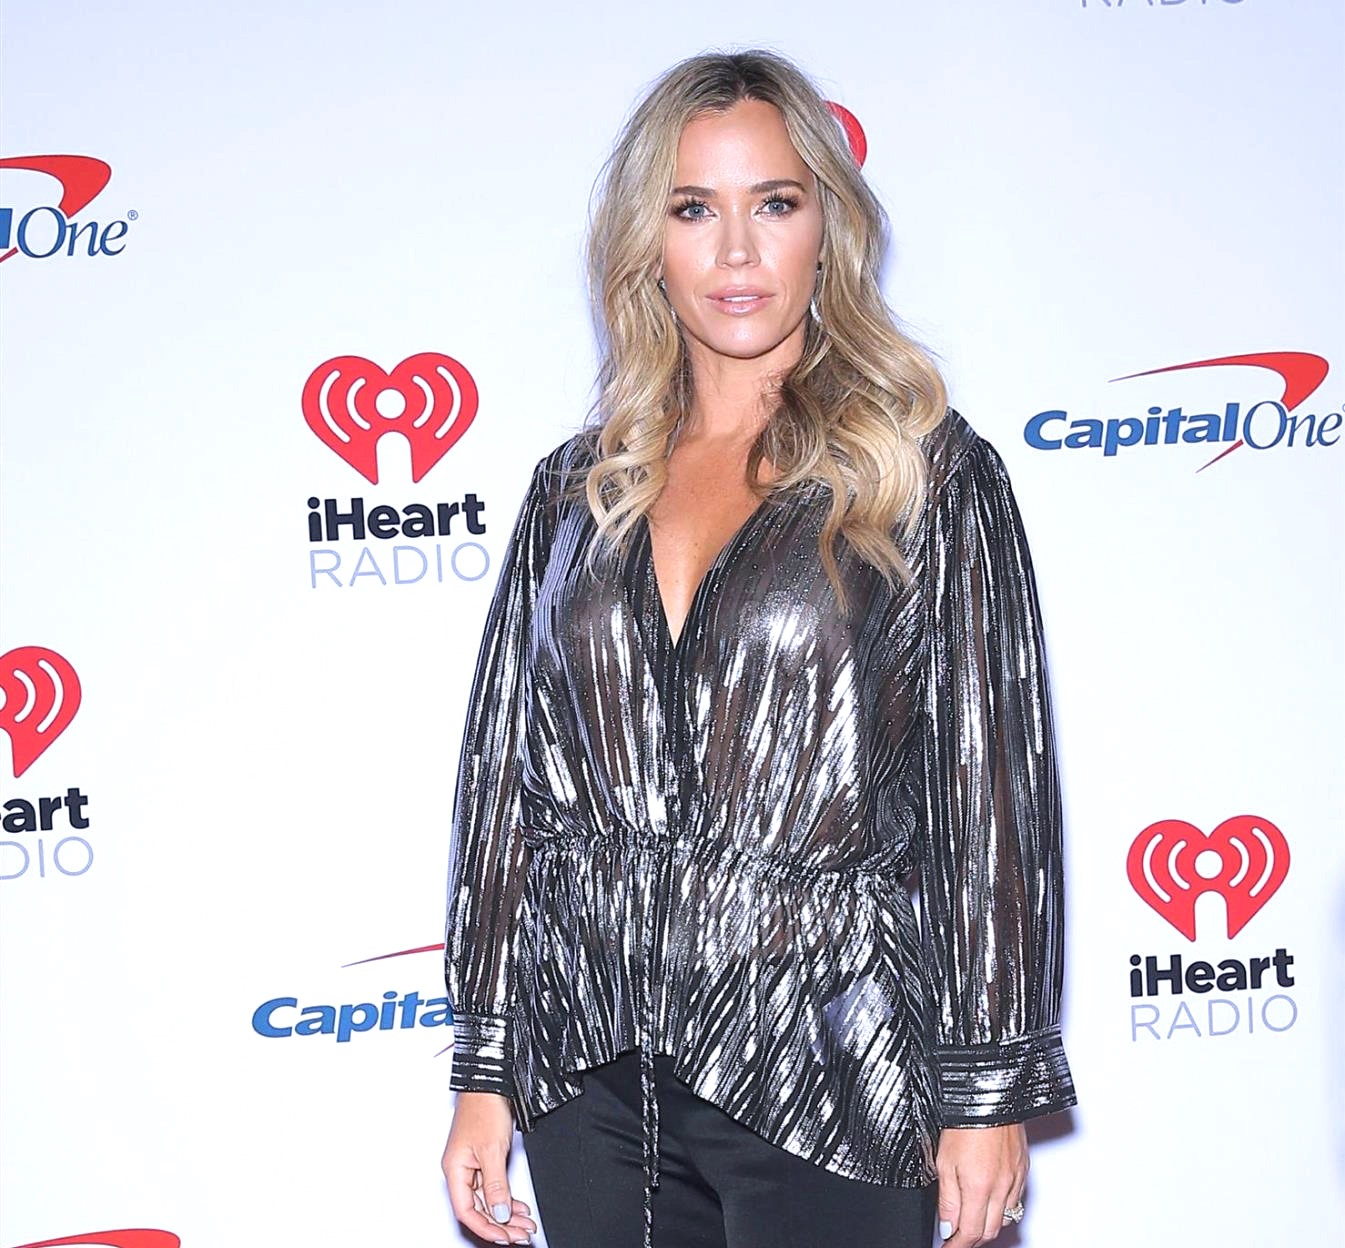 """It's Official! Teddi Mellencamp Confirms She's Been Fired From RHOBH, Admits She's """"Sad"""" and Says It Feels Like a """"Breakup,"""" Shares Plans For the Future, See Her Sad Video Announcing Her Departure"""